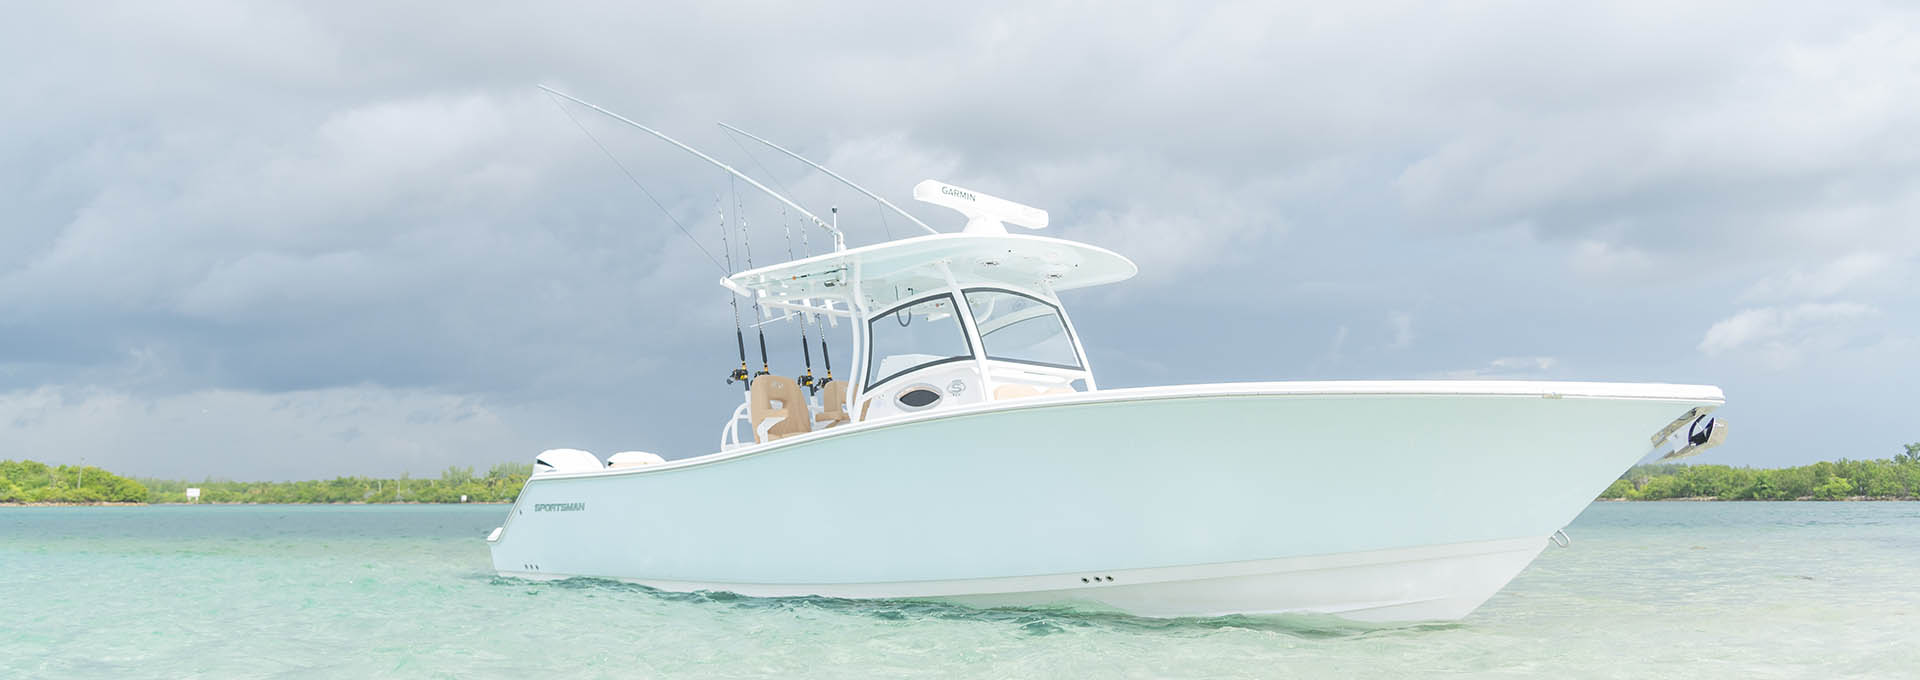 Open 312 Center Console Features Sportsman Boats Led Control Products Lectrotab Electromechanical Trim Tab Systems